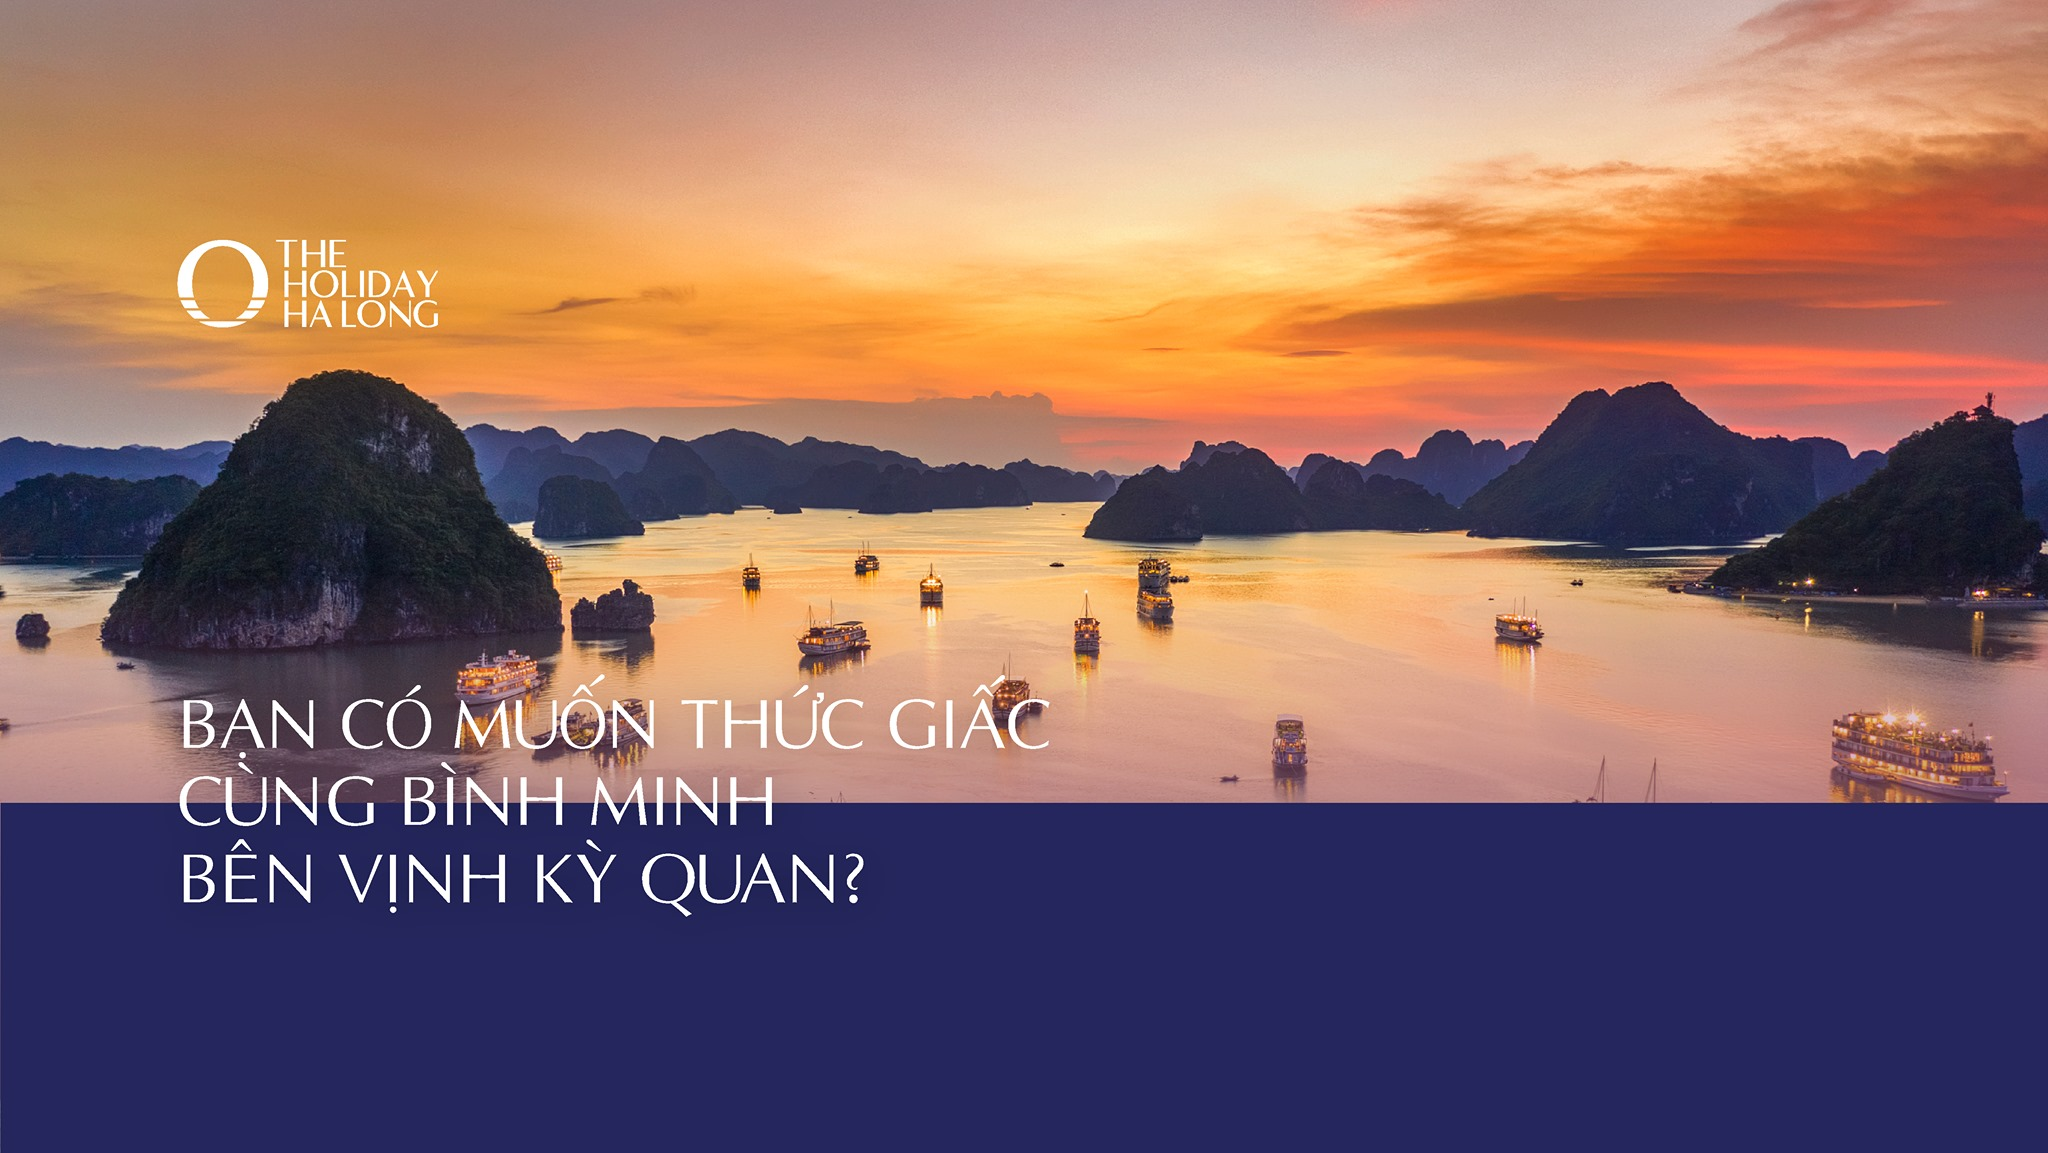 THE HOLIDAY HA LONG